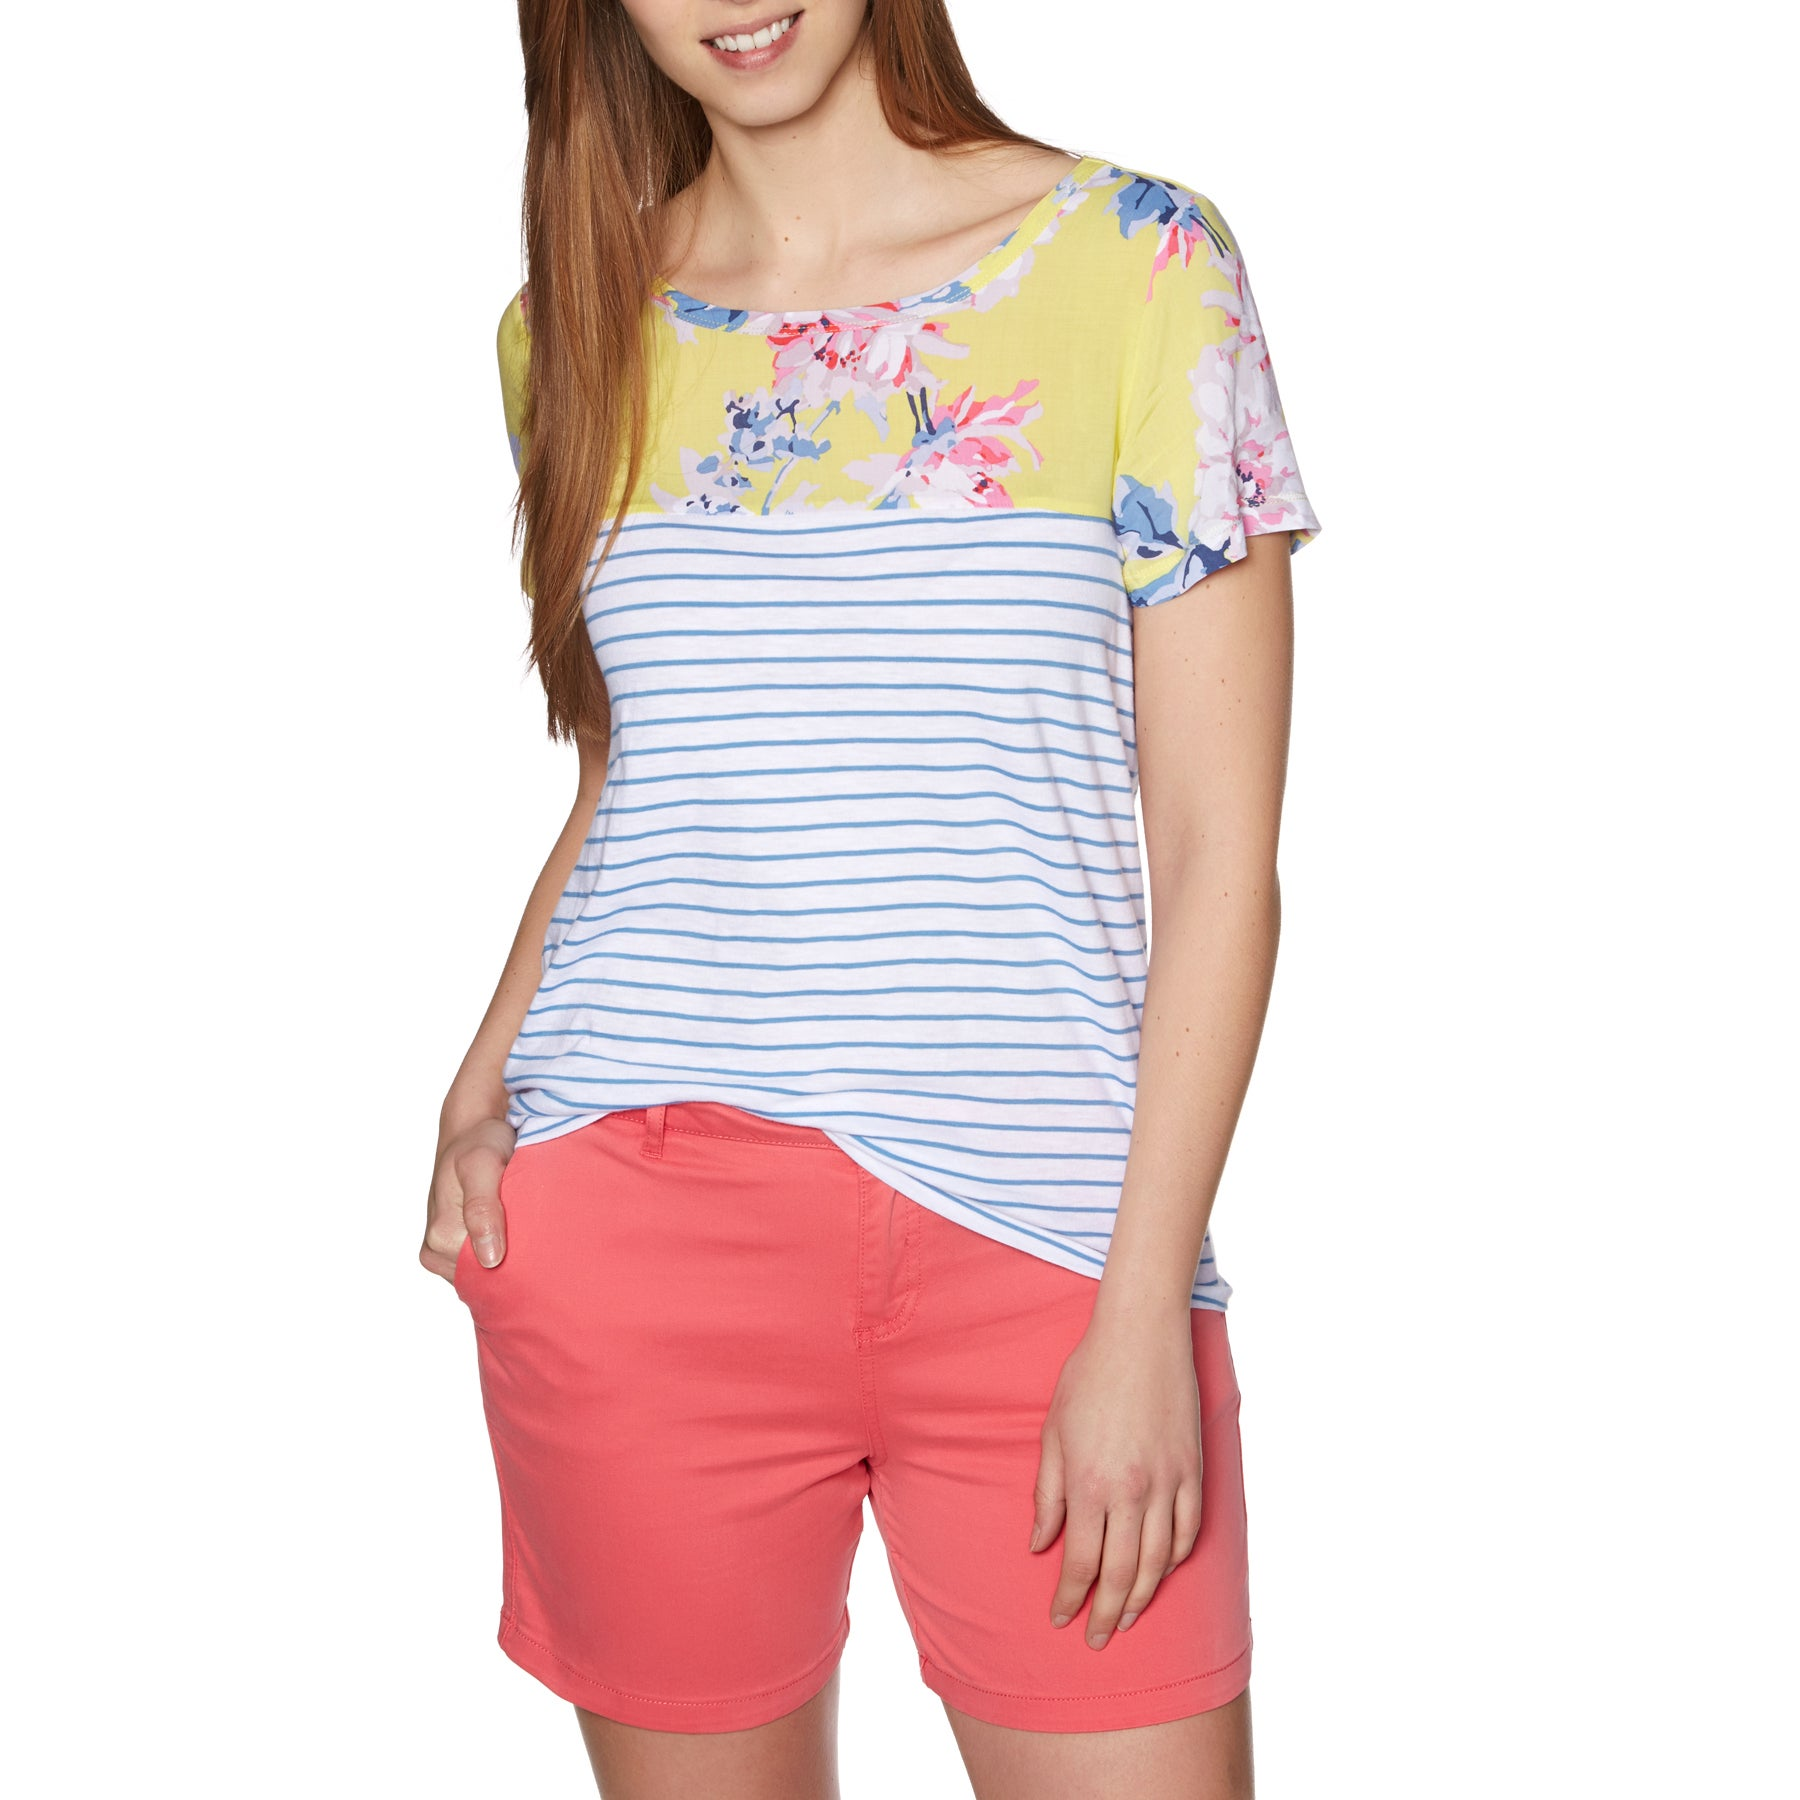 Joules Suzy Womens Short Sleeve T-Shirt - Lemon Whitstable Floral